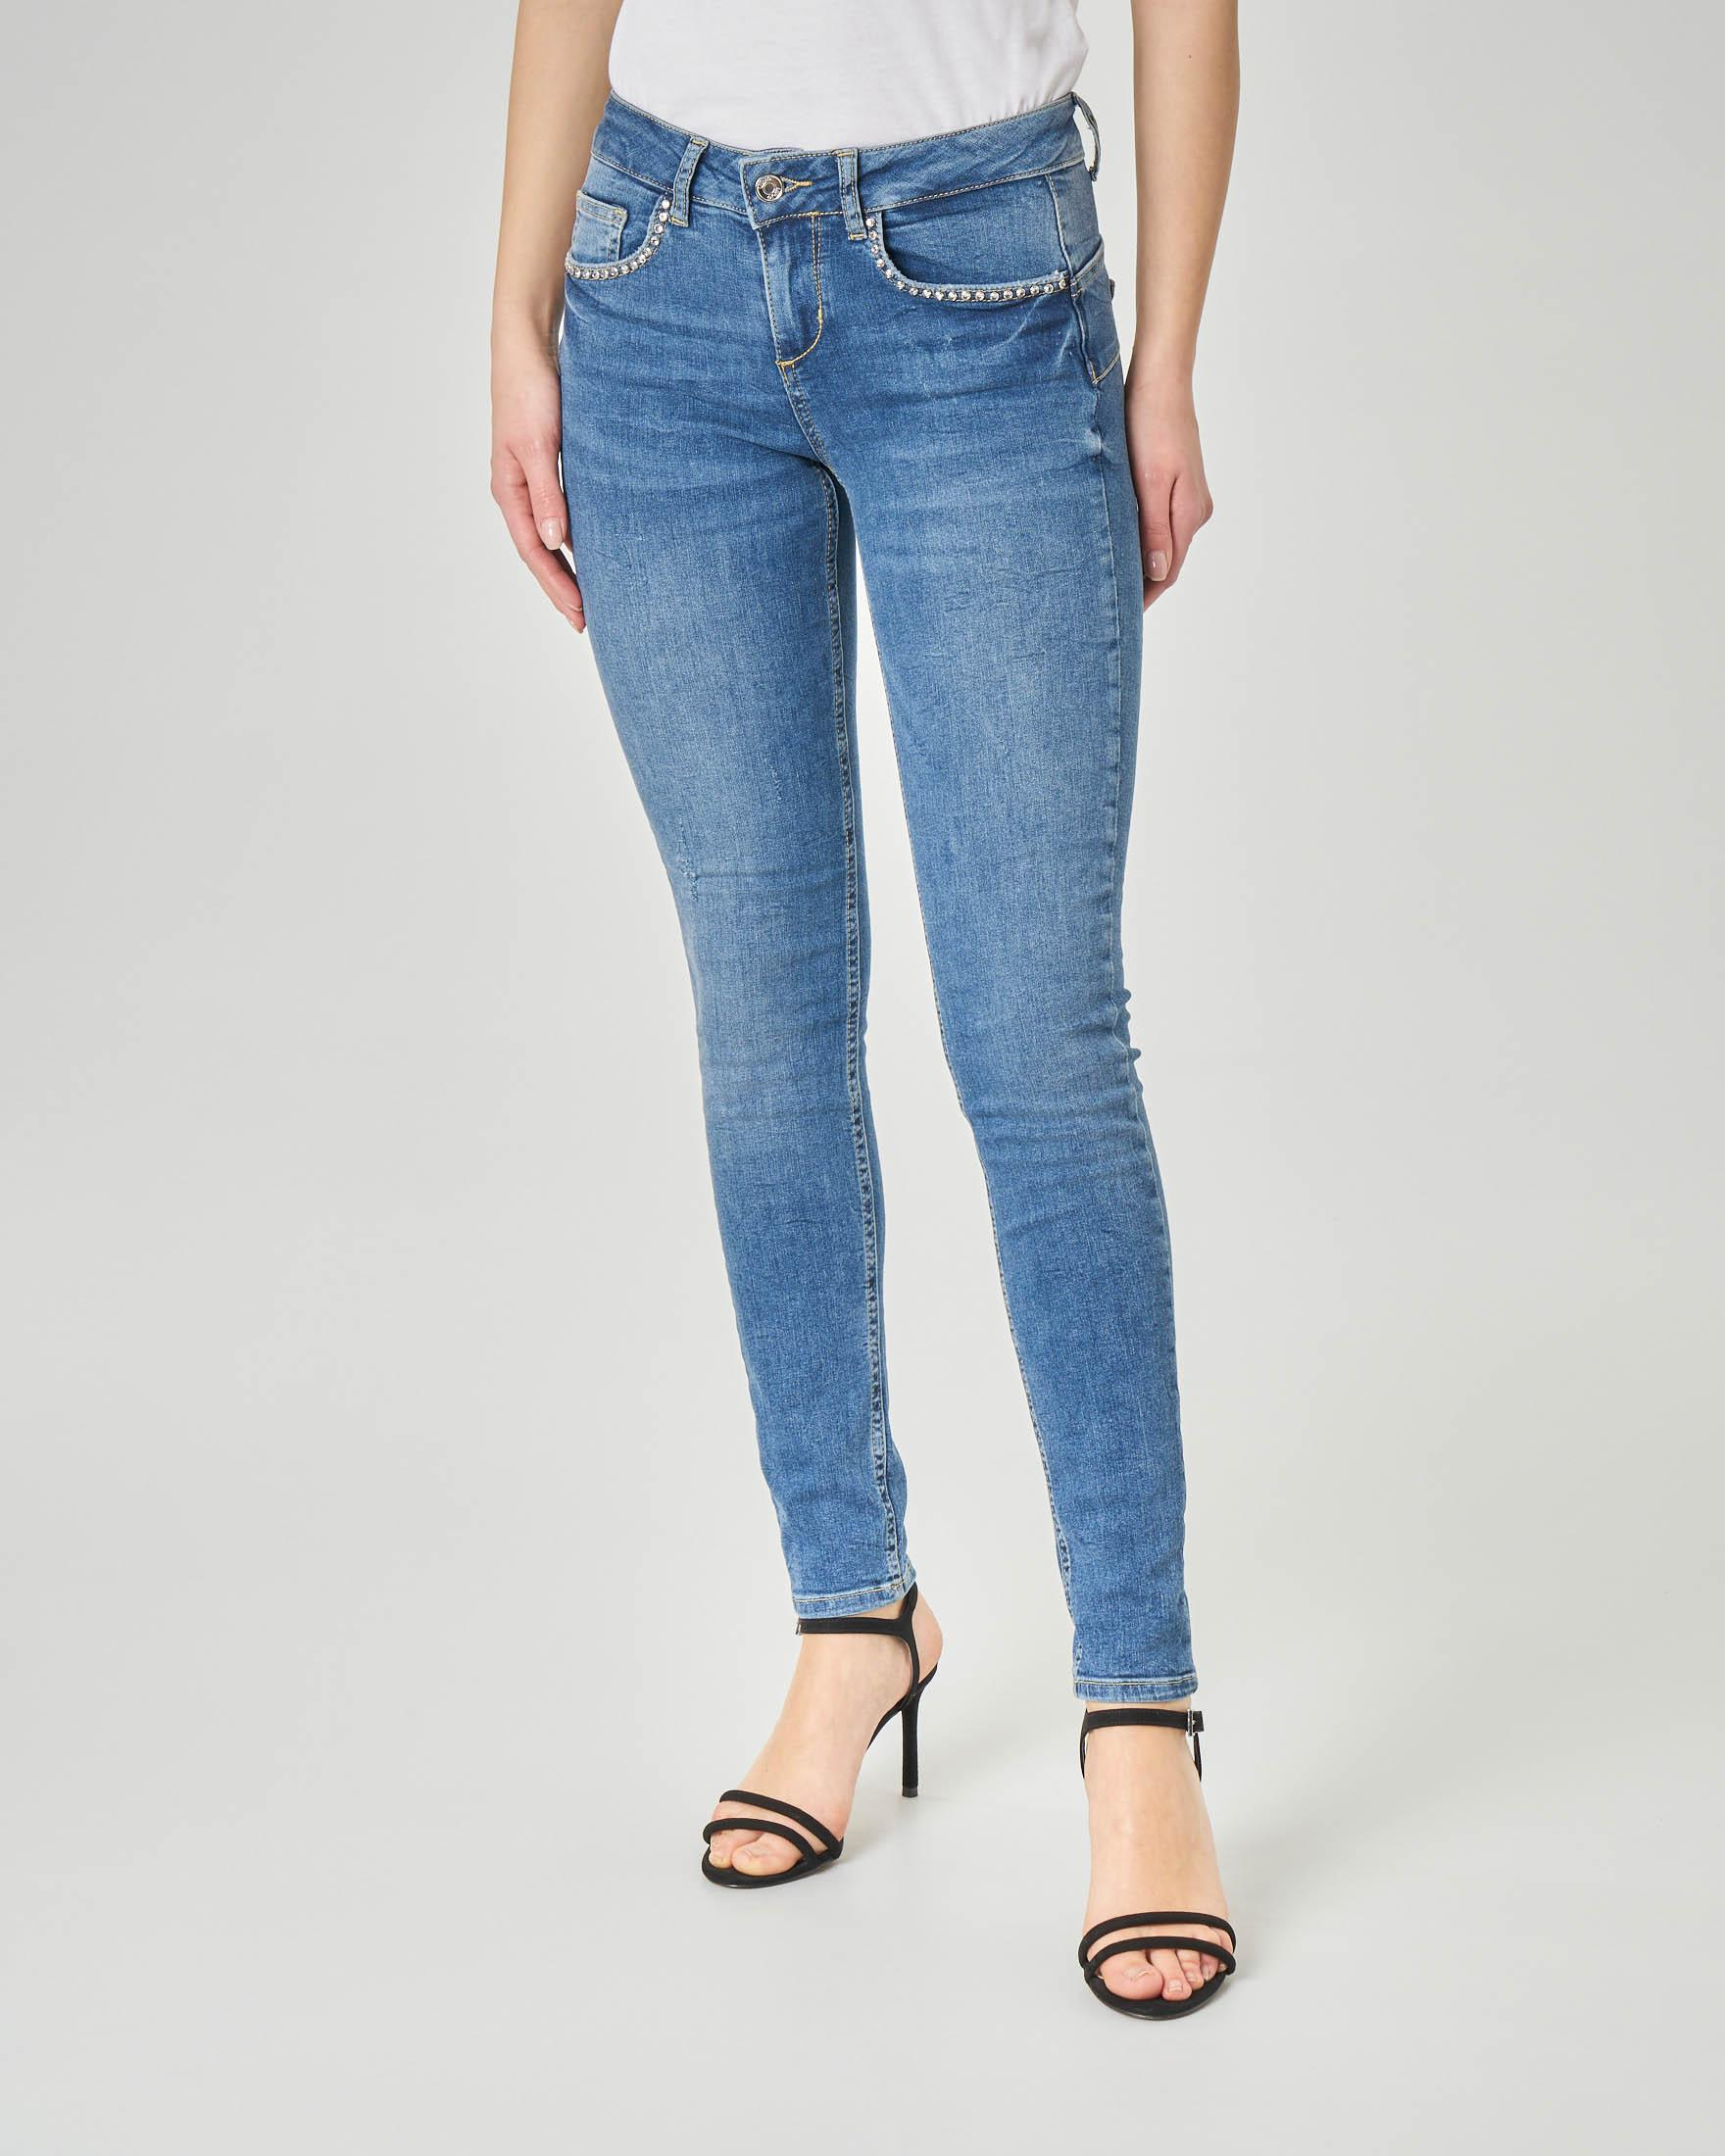 Jeans skinny blu stone washed con strass sulle tasche